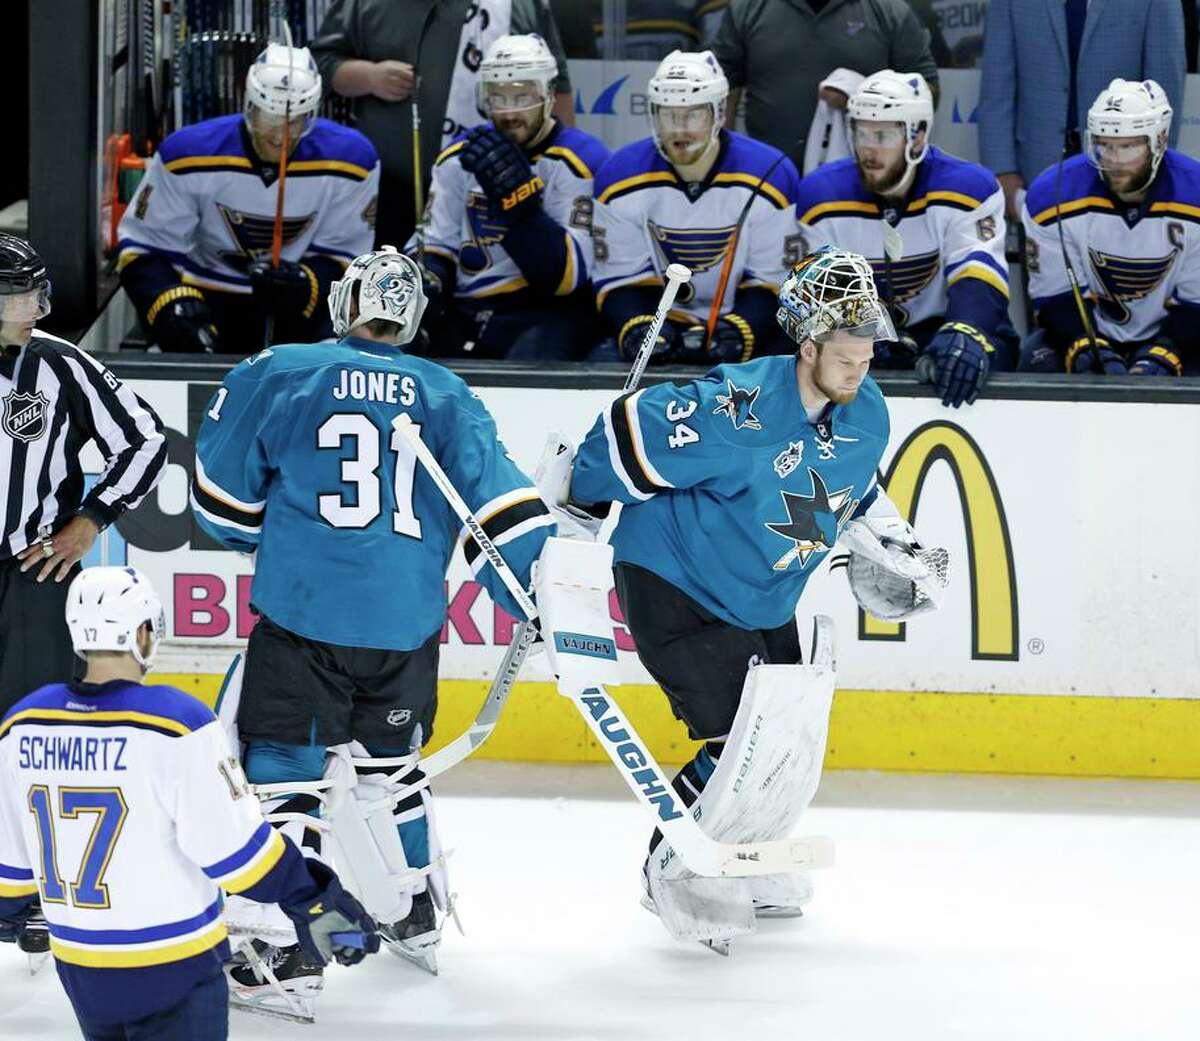 Martin Jones (31) is out in favor of James Reimer (along with Adin Hill) as the Sharks' goaltender this season.